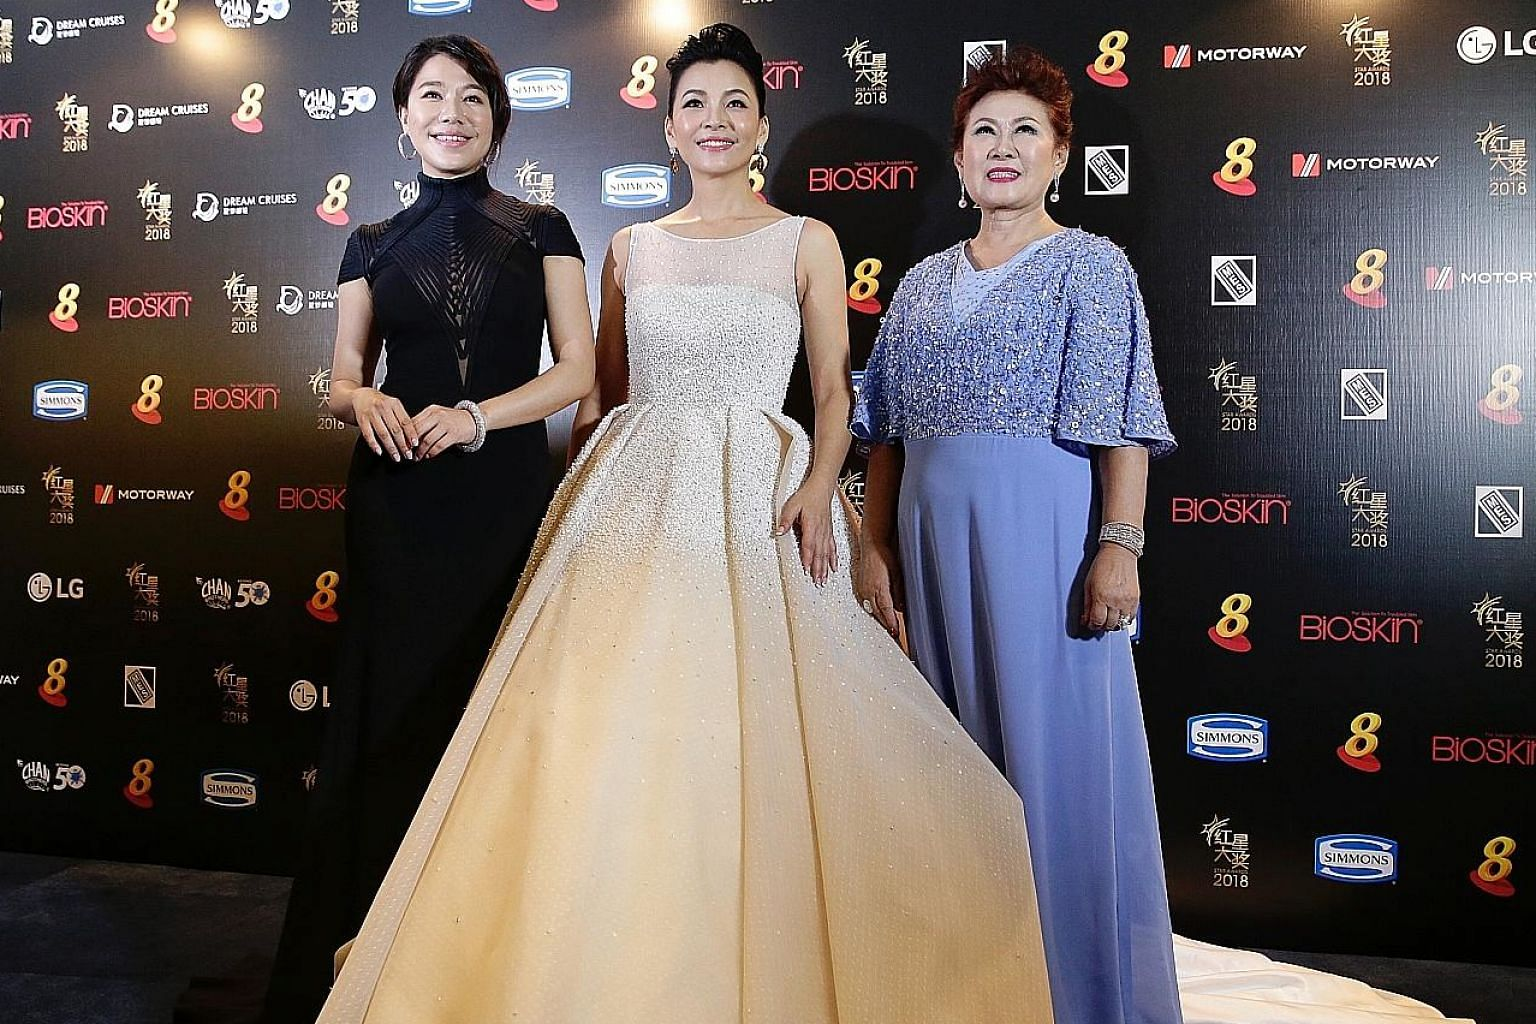 (from left) Belinda Lee, Wendy Zeng Xiao Ying and Jin Yinji, who was named one of the Top 10 Most Popular Female Artistes.